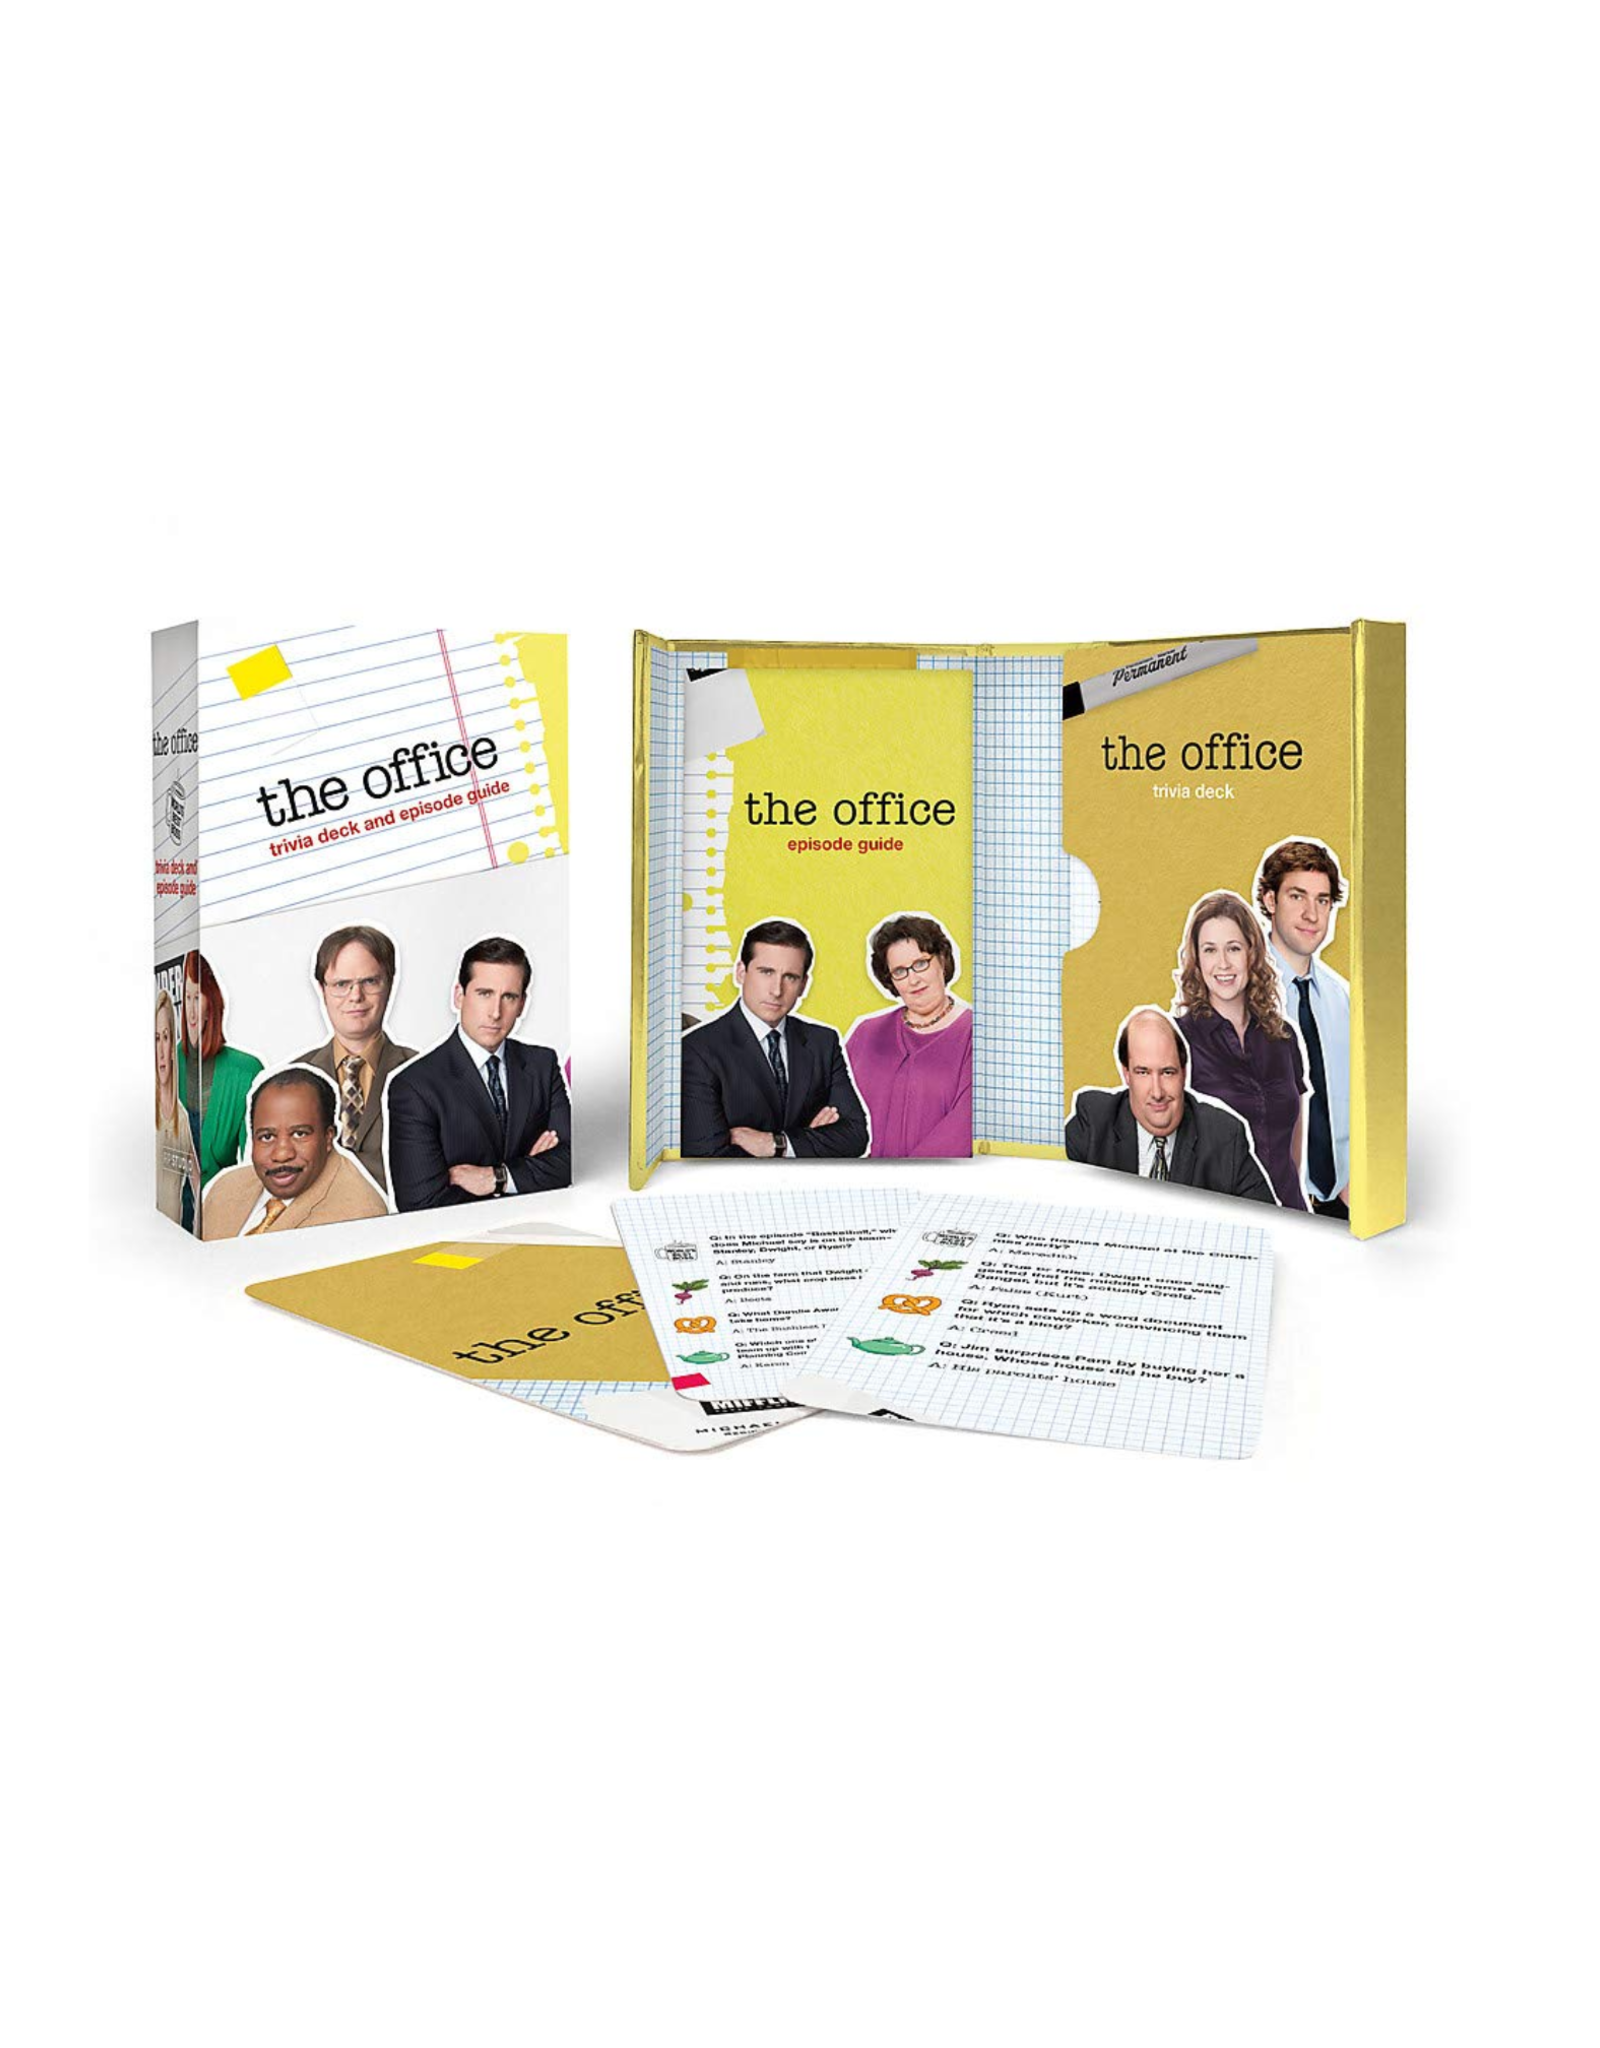 The Office Trivia Deck & Guide